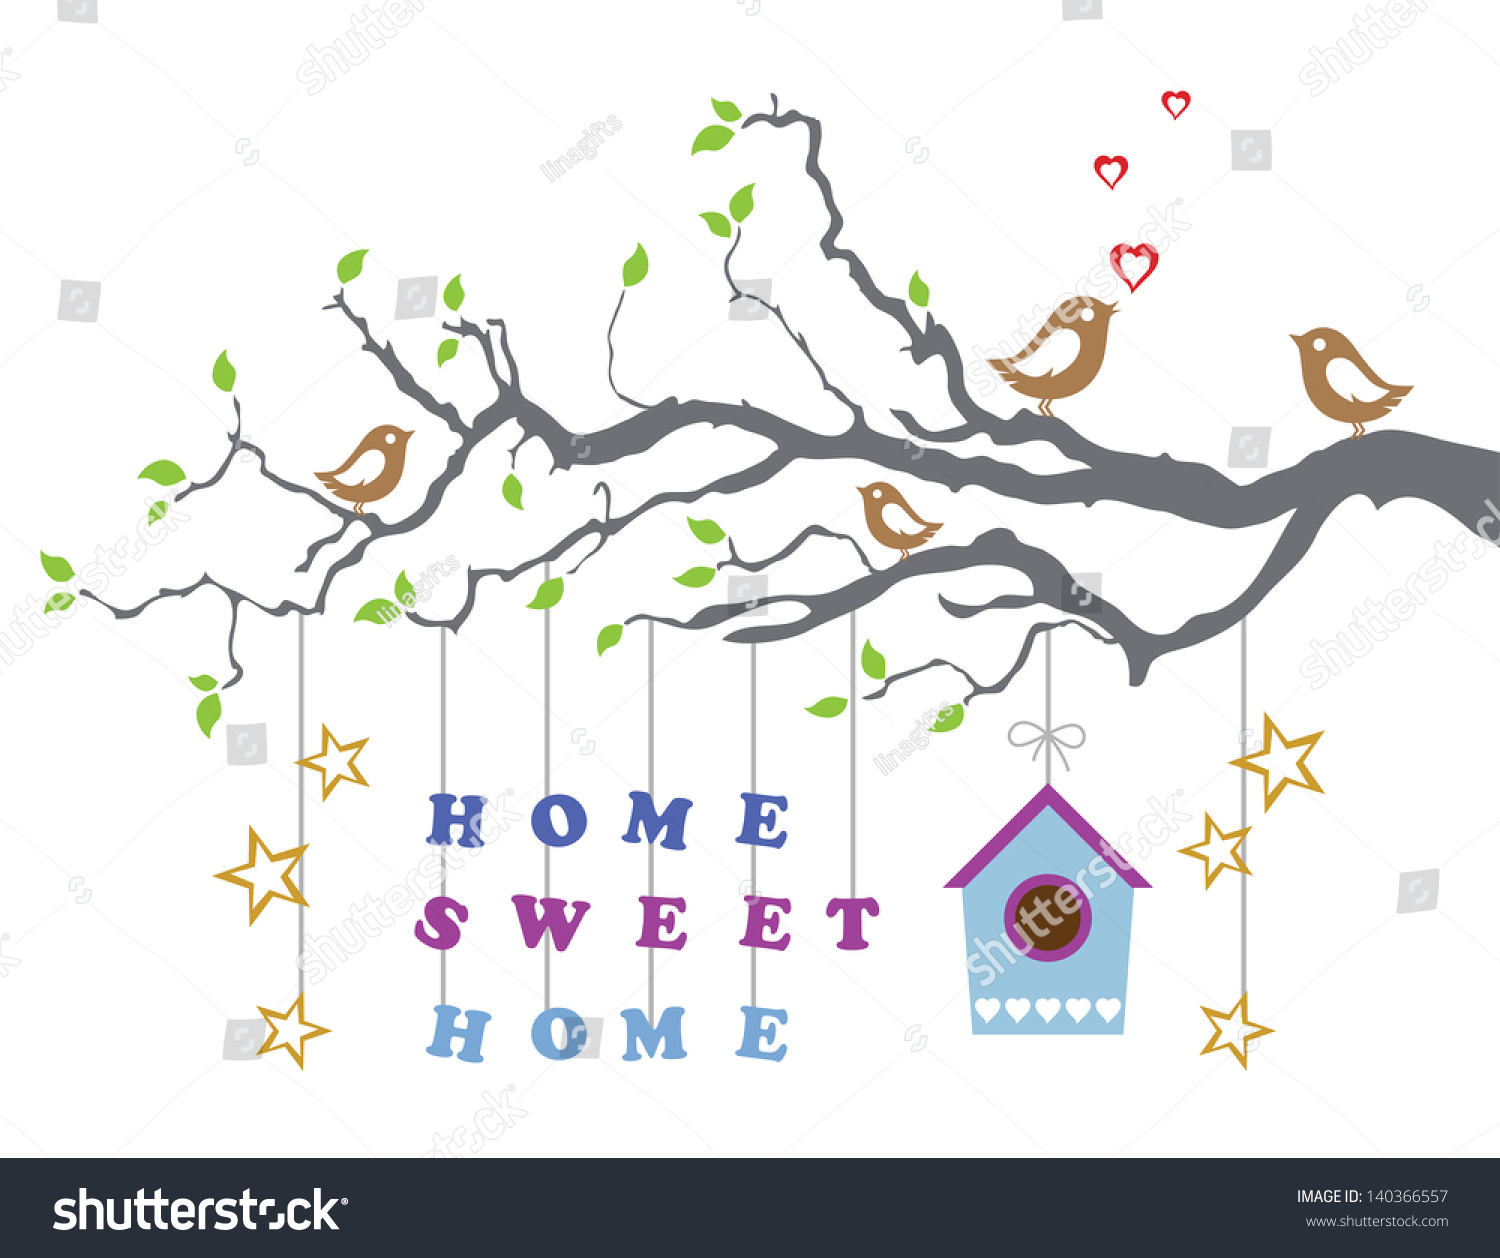 Home sweet home movingin new house stock vector royalty free home sweet home moving in new house greeting card this image is a vector m4hsunfo